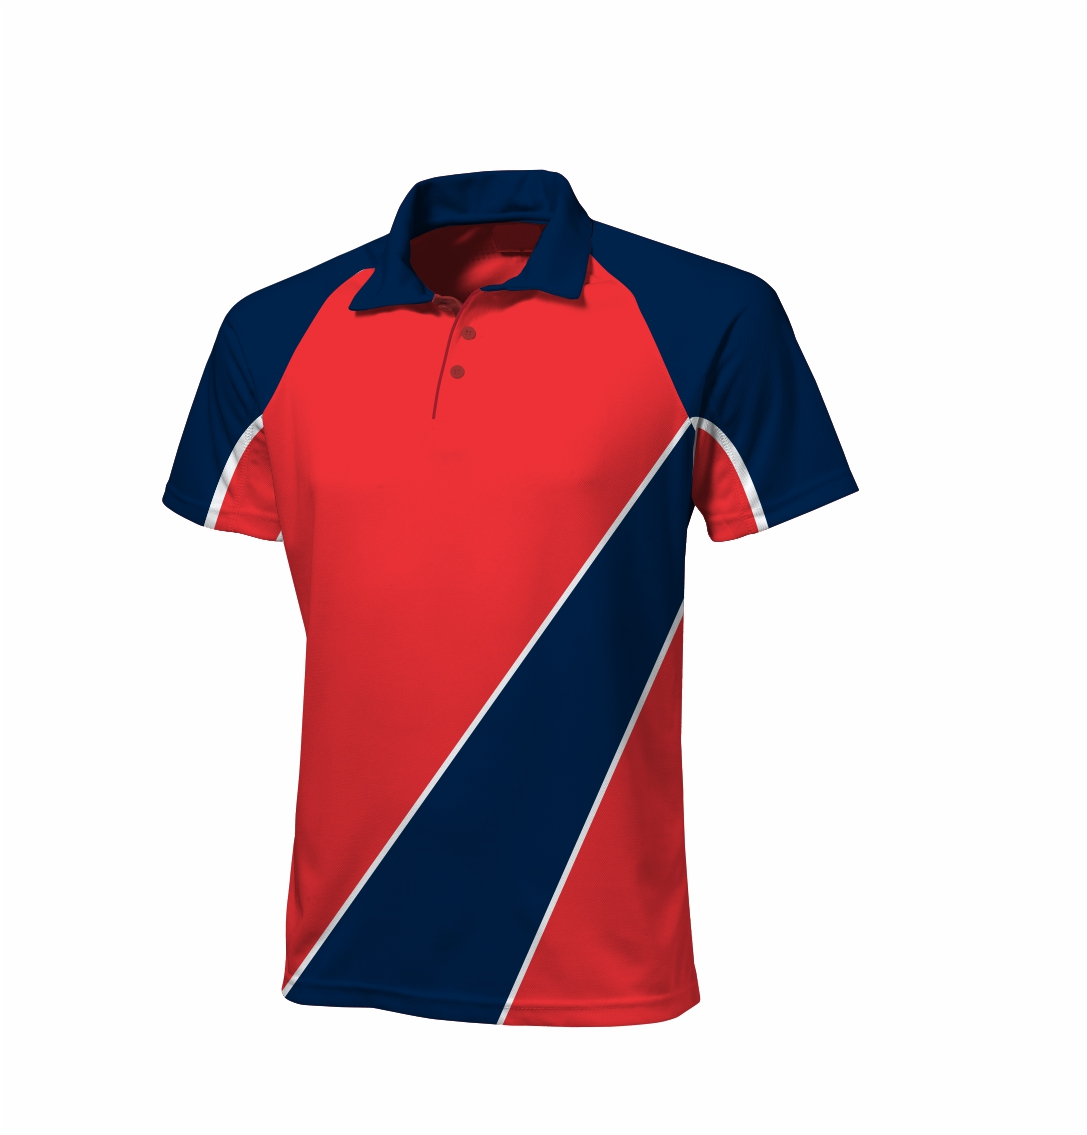 Panelled Zuco golfer - Morne